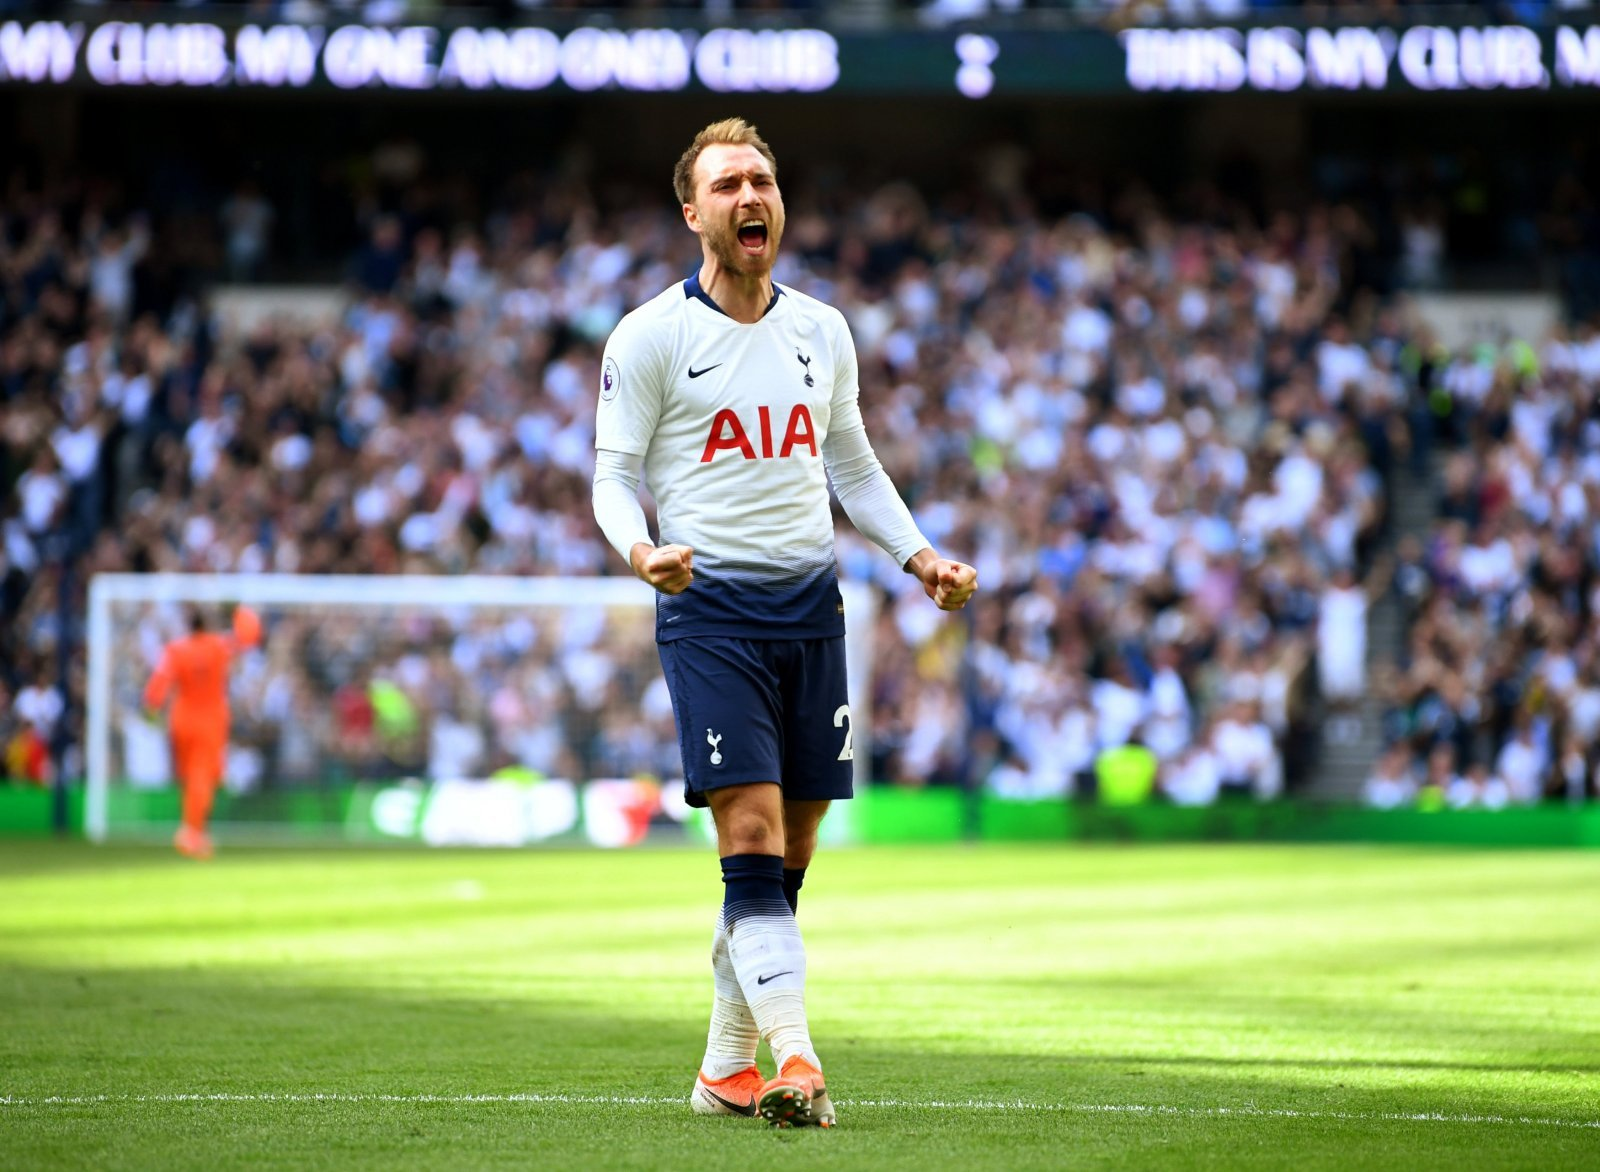 Tottenham: Christian Eriksen looks to be closer to Real Madrid move than ever before